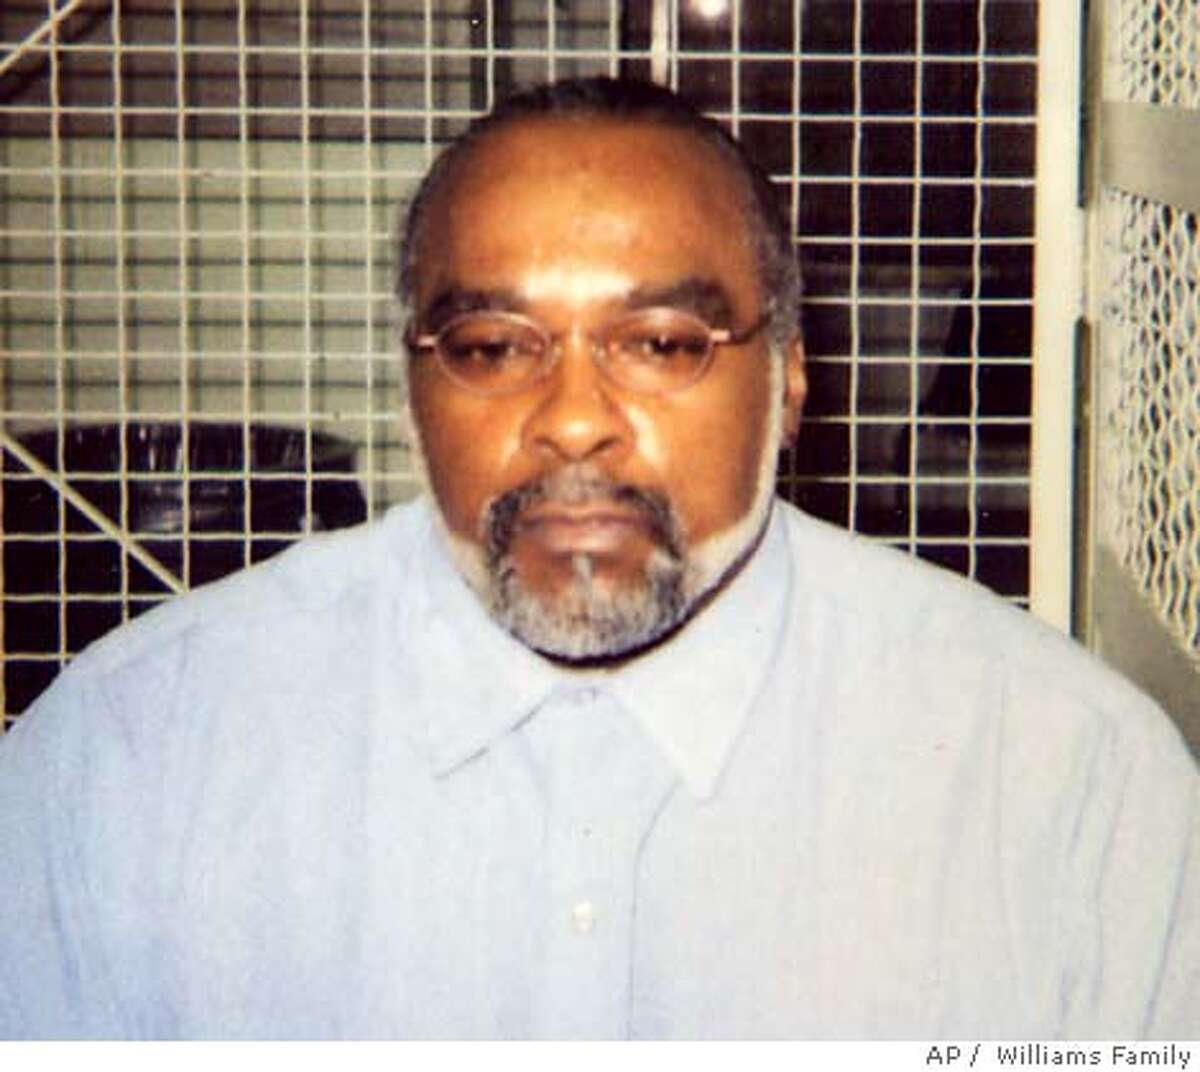 """** FILE ** In this undated photo provided by the family of Stanley Williams, Stanley """"Tookie"""" Williams poses for a photo in the visiting area of San Quentin State Prison in California. Prosecutors asked the California Supreme Court on Sunday, Dec. 11, 2005 to reject former gang leader and convicted killer Williams' request to block his execution, set for early Tuesday. (AP Photo/Courtesy of Williams Family, File) Ran on: 12-12-2005 Ran on: 12-12-2005"""